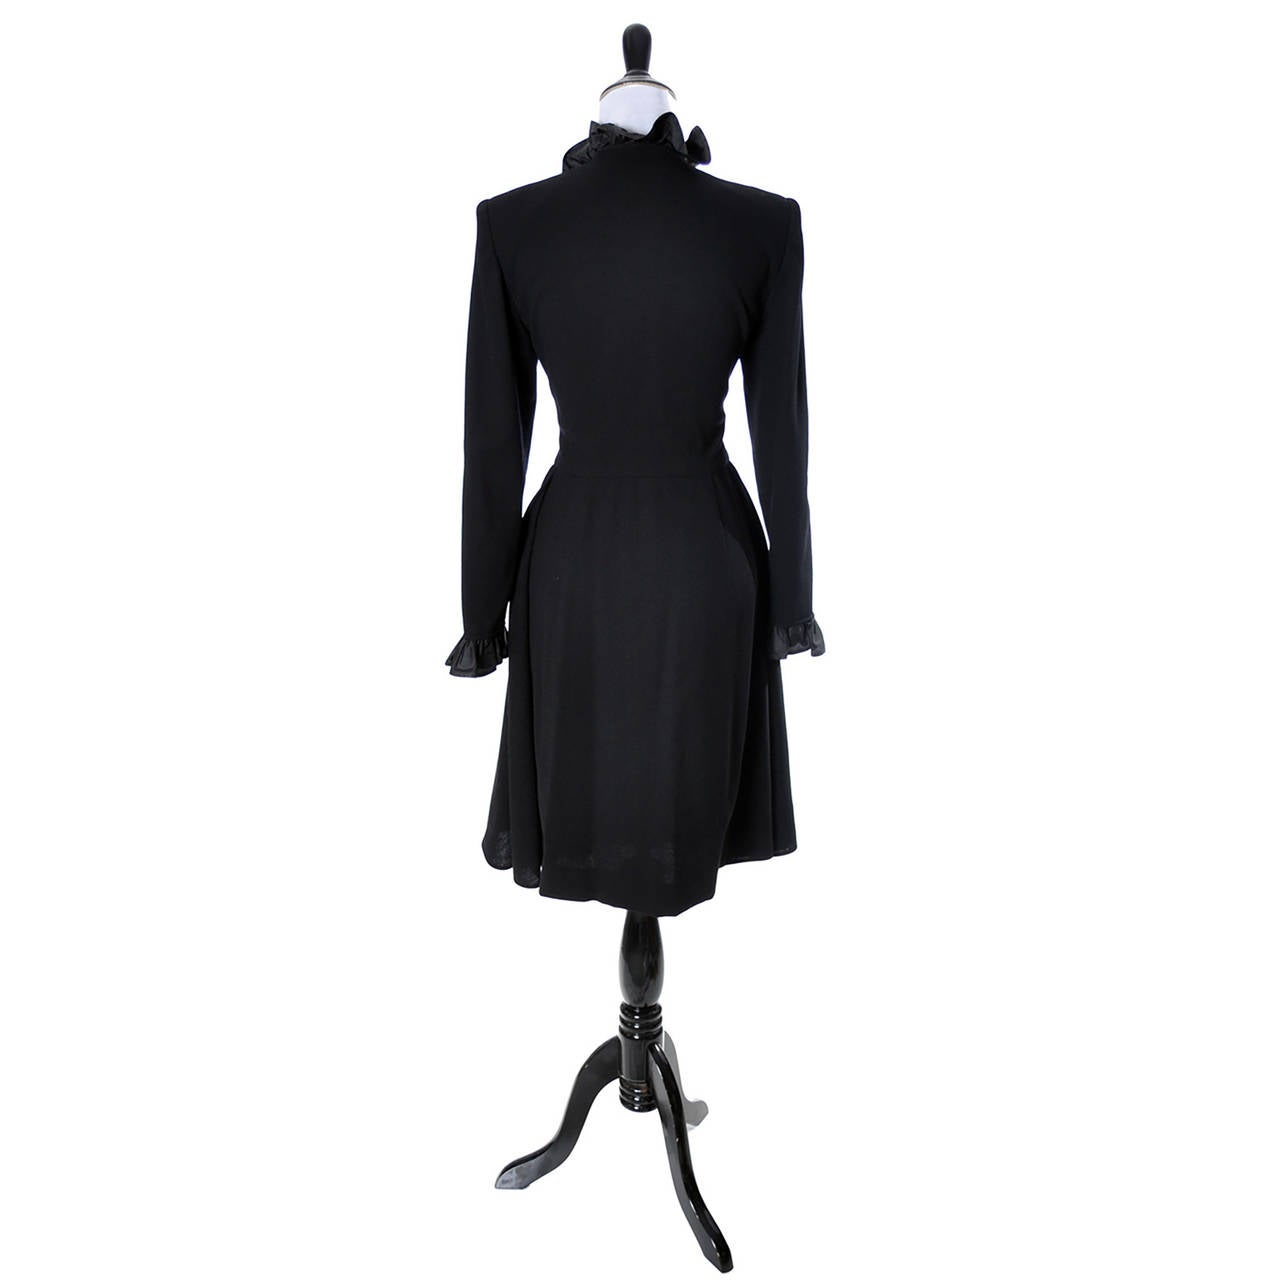 Vintage Valentino Black Wool Crepe Dress w/ Ruffled Taffeta Trim Size 6 For Sale 1